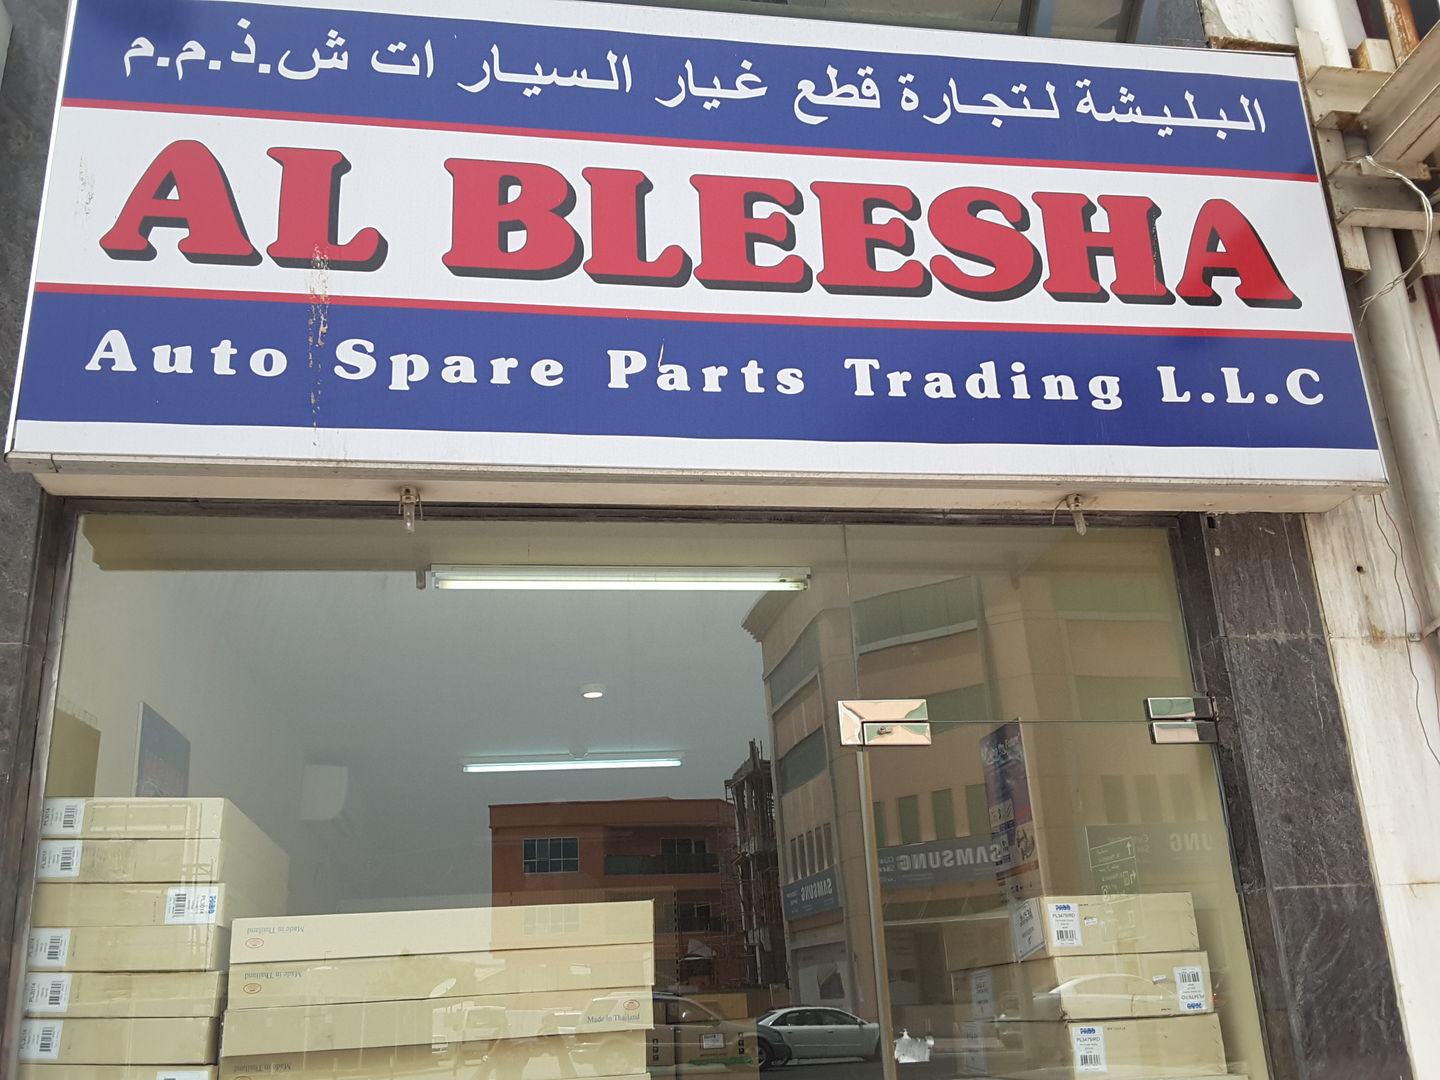 HiDubai-business-al-bleesha-auto-spare-parts-trading-transport-vehicle-services-auto-spare-parts-accessories-al-khabaisi-dubai-2